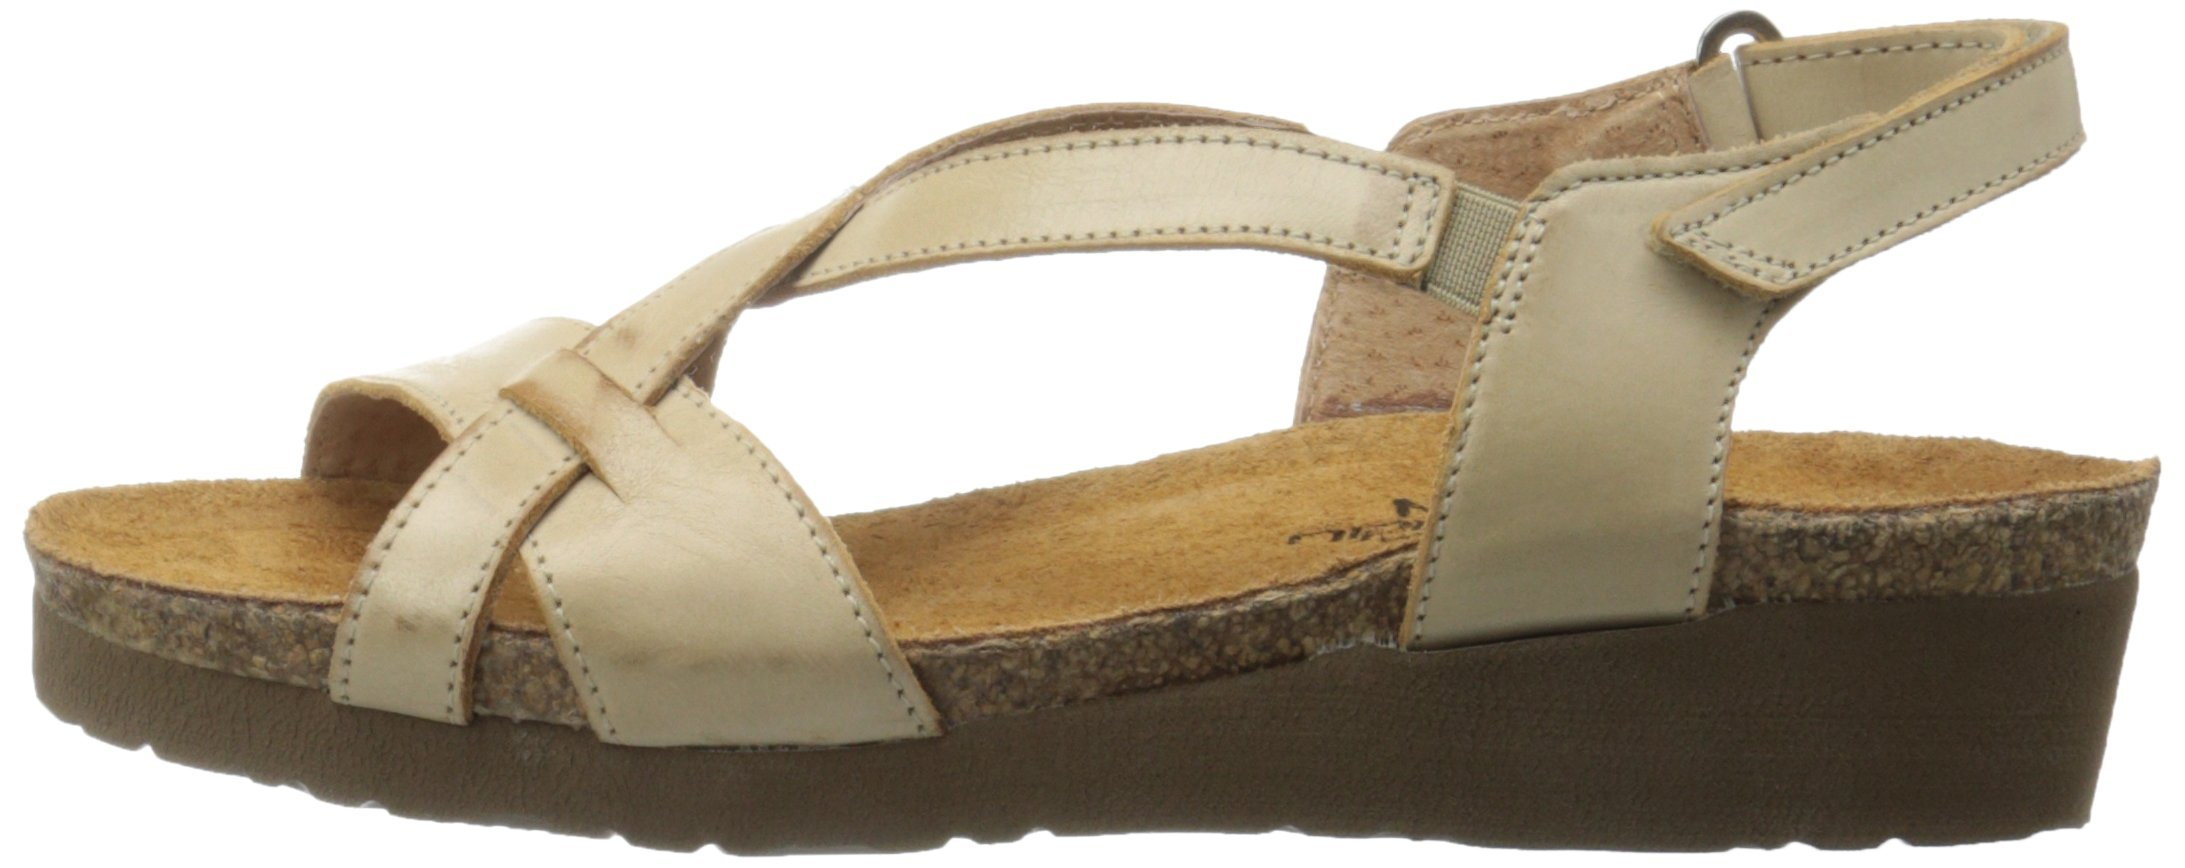 Naot Women's Bernice Wedge Sandal, Biscuit Leather, 35 EU/4.5-5 M US by NAOT (Image #5)